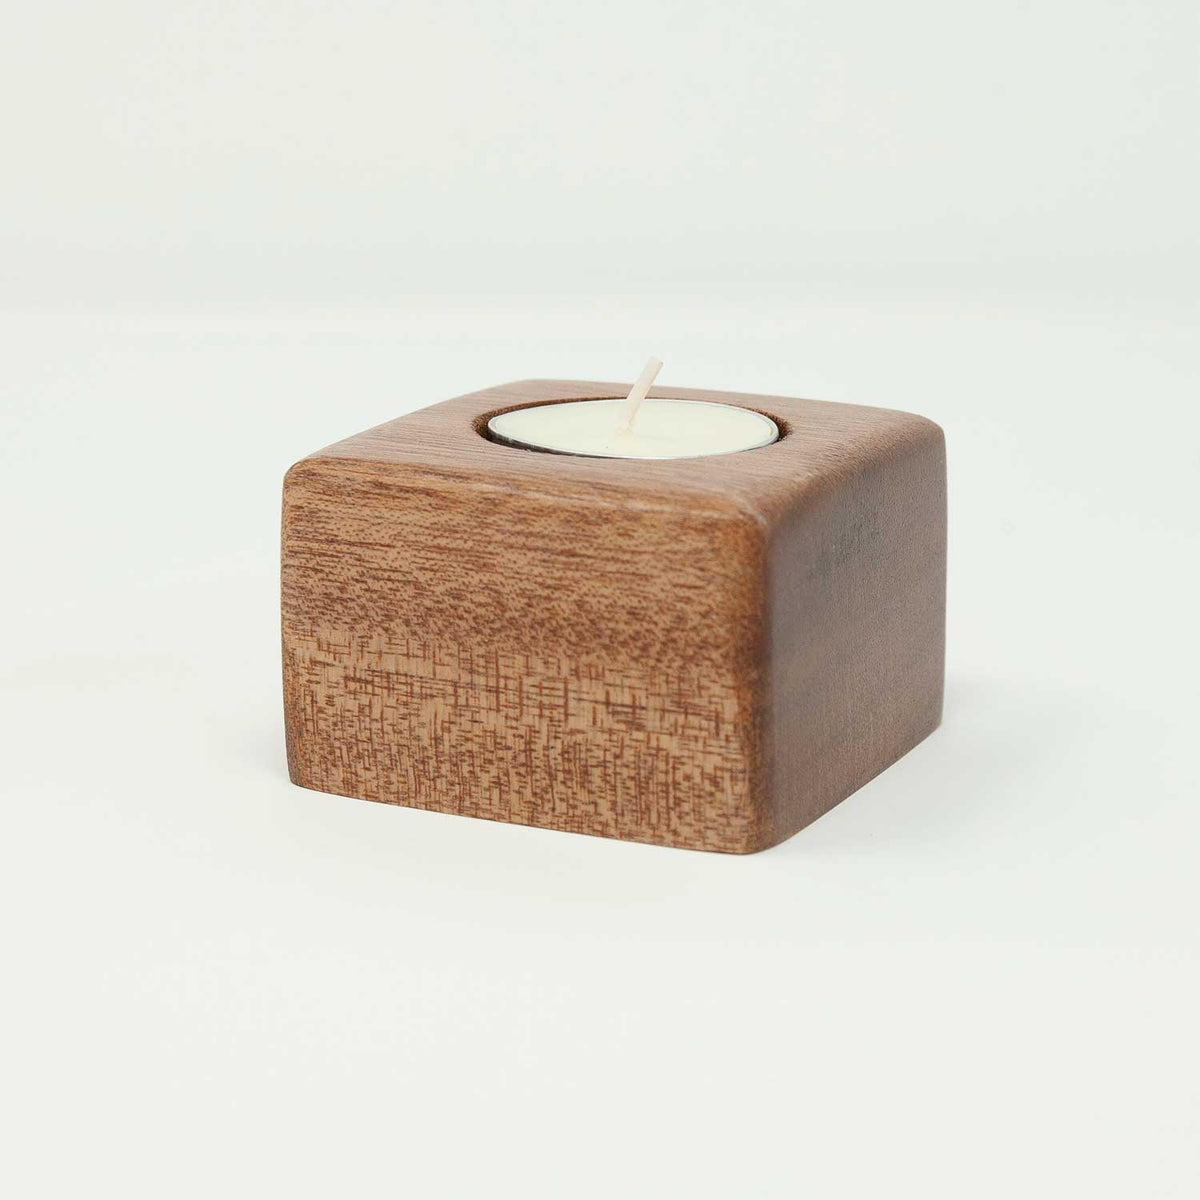 Tealight Candle Holder - Cube-shape